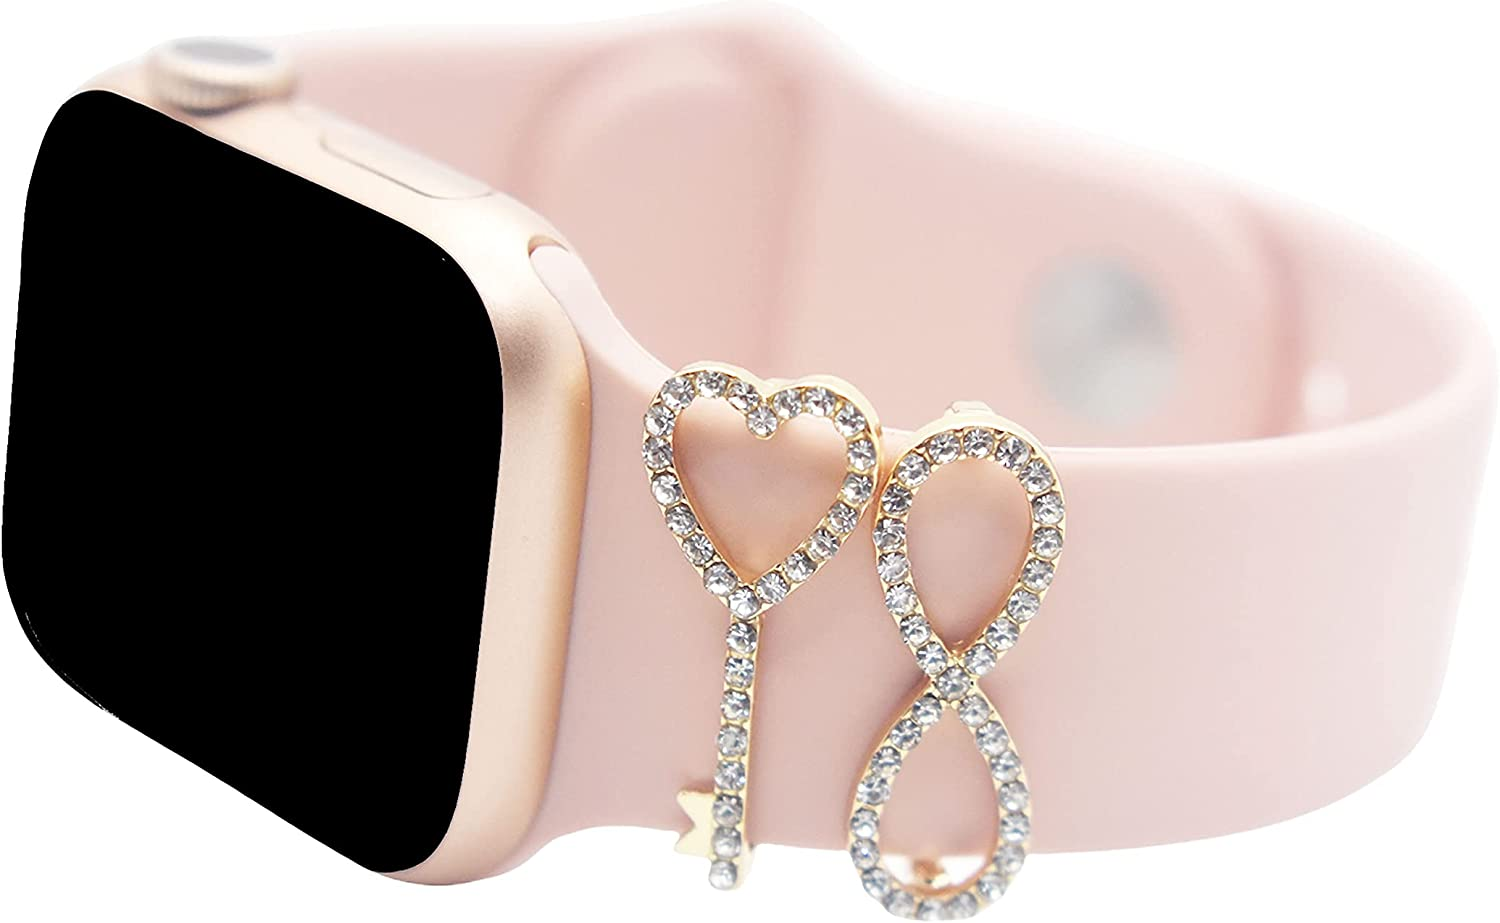 Smart Watch Decorative-Rings-Loops Trendy Charms Figure Shaped Rhinestone Charms Compatible with Apple watch 38mm 40mm 42mm 44mm Sparkles Jewelry-Accessories-Charms for Watch Band Series 6/5/4/3/2/1 2 2PCS Smart Apple Watch Accessories